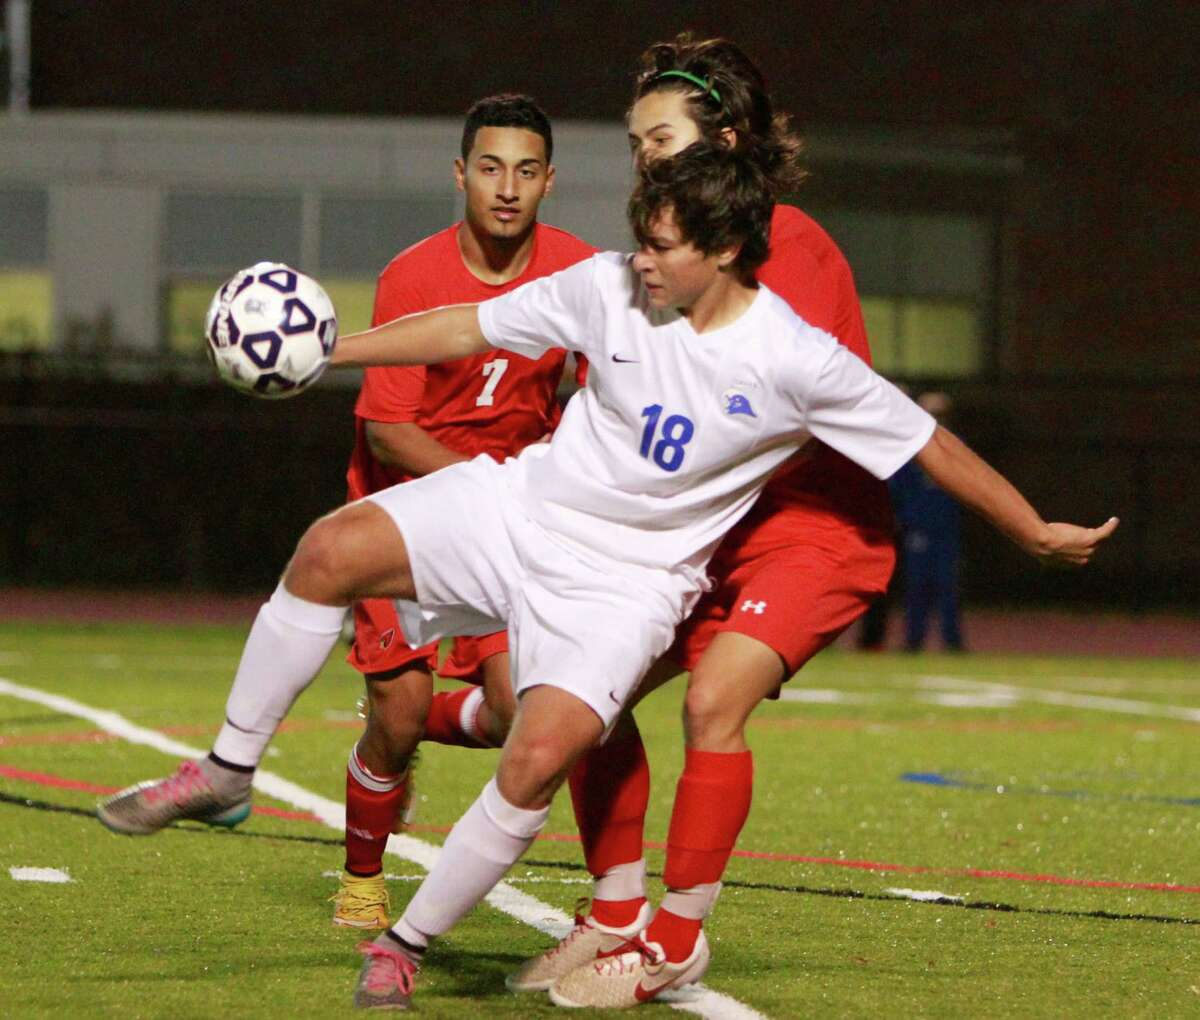 Darien's Pablo Martinez gains control of the ball under pressure from Greenwich's Sebastian oe on Monday.